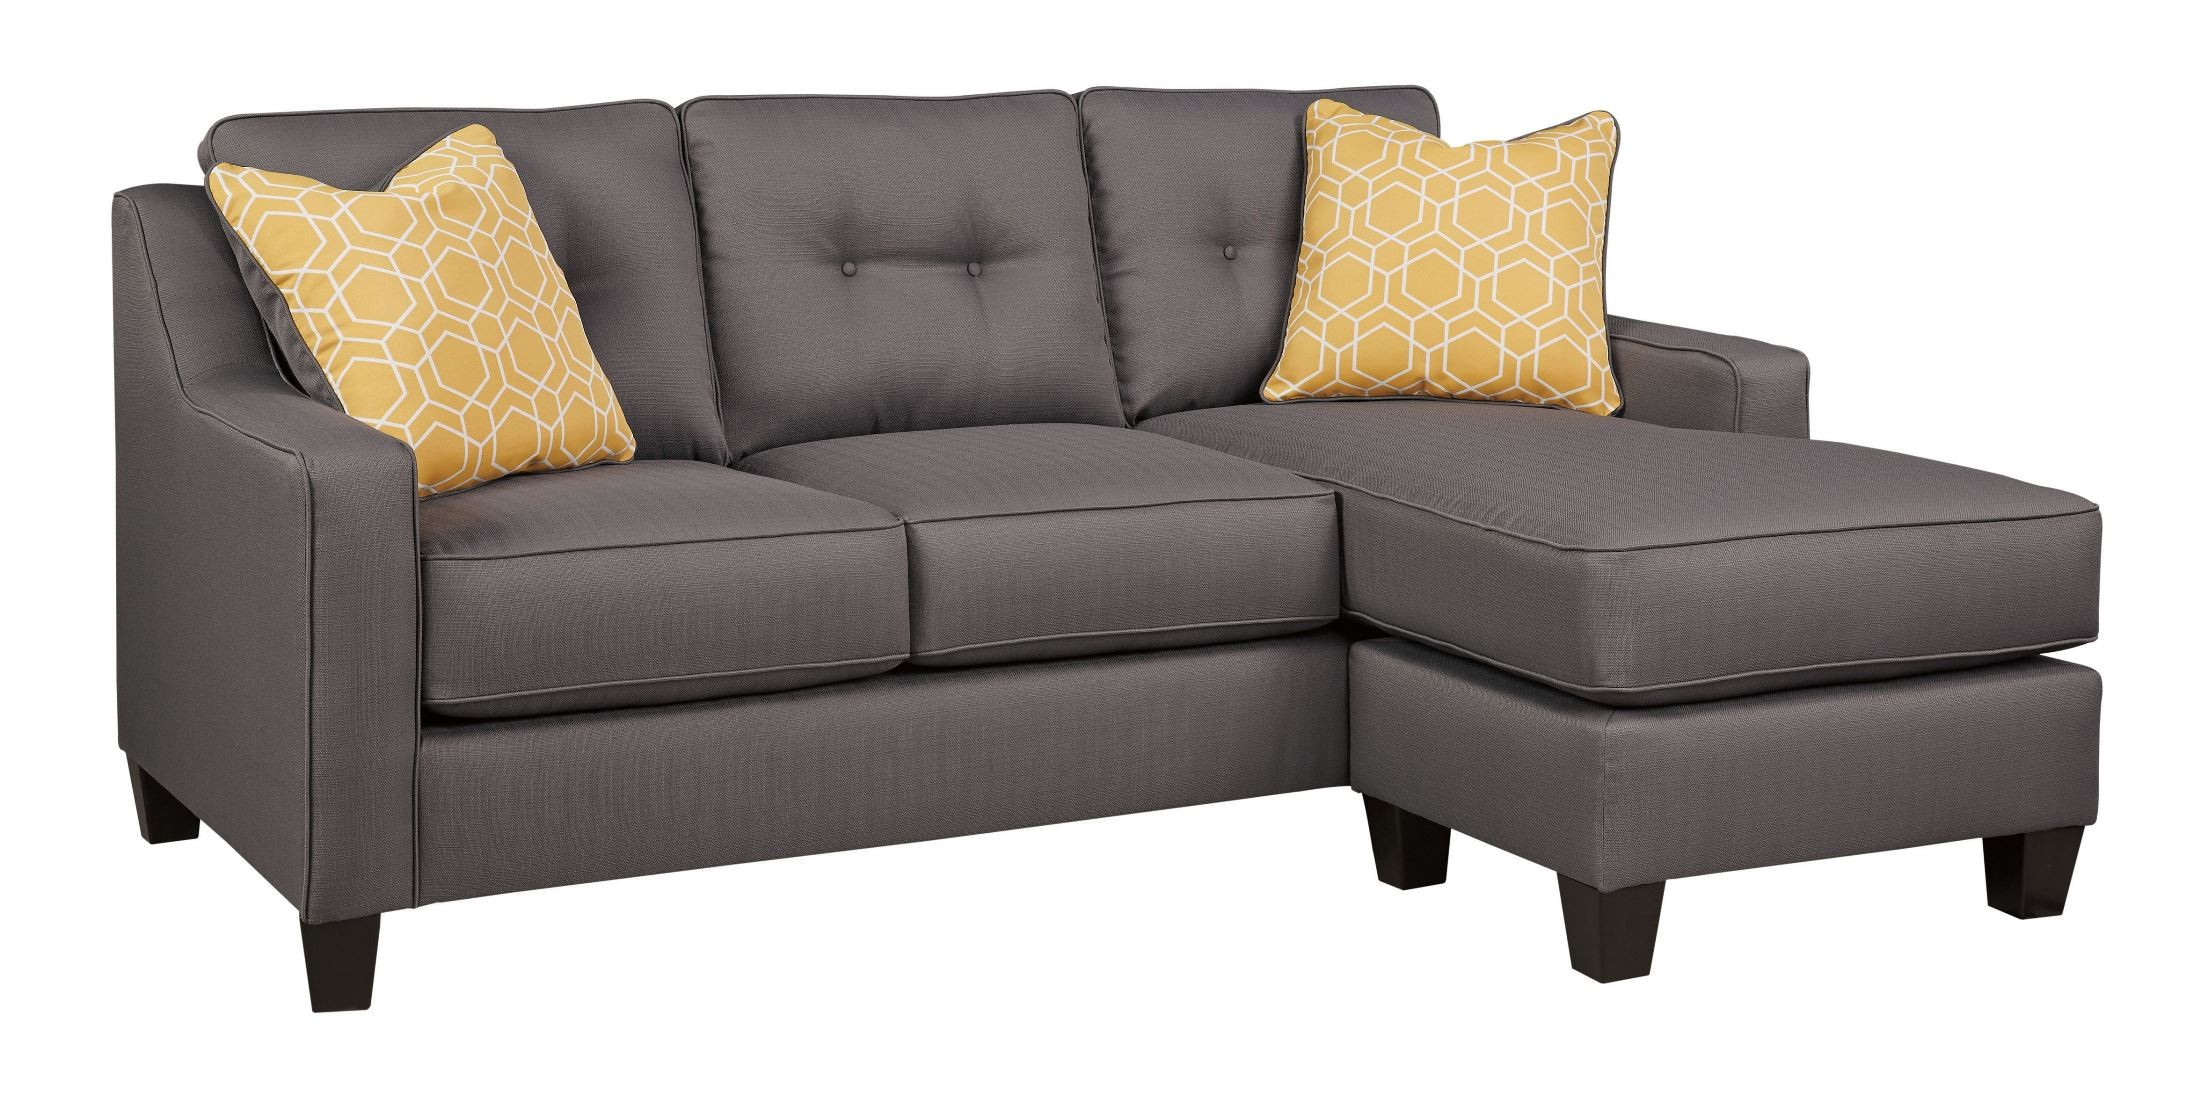 Aldie Nuvella Gray Sofa Chaise  sc 1 st  Coleman Furniture : grey sofa with chaise - Sectionals, Sofas & Couches